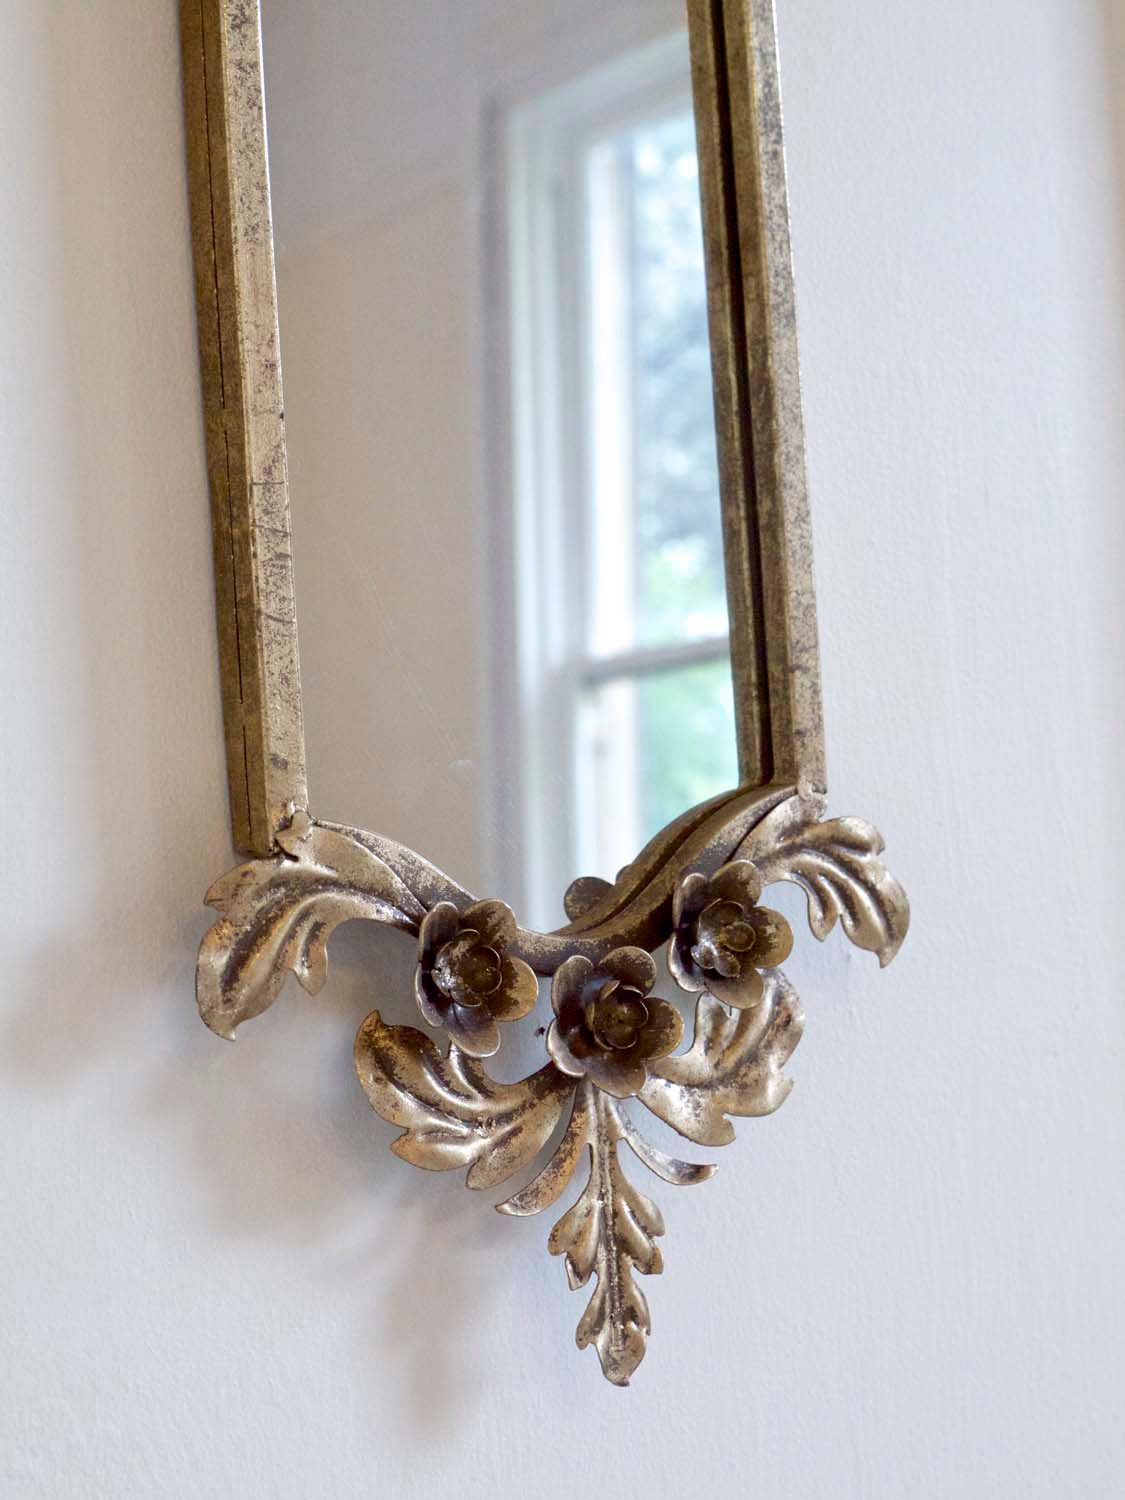 10 French mirror with floral ornements